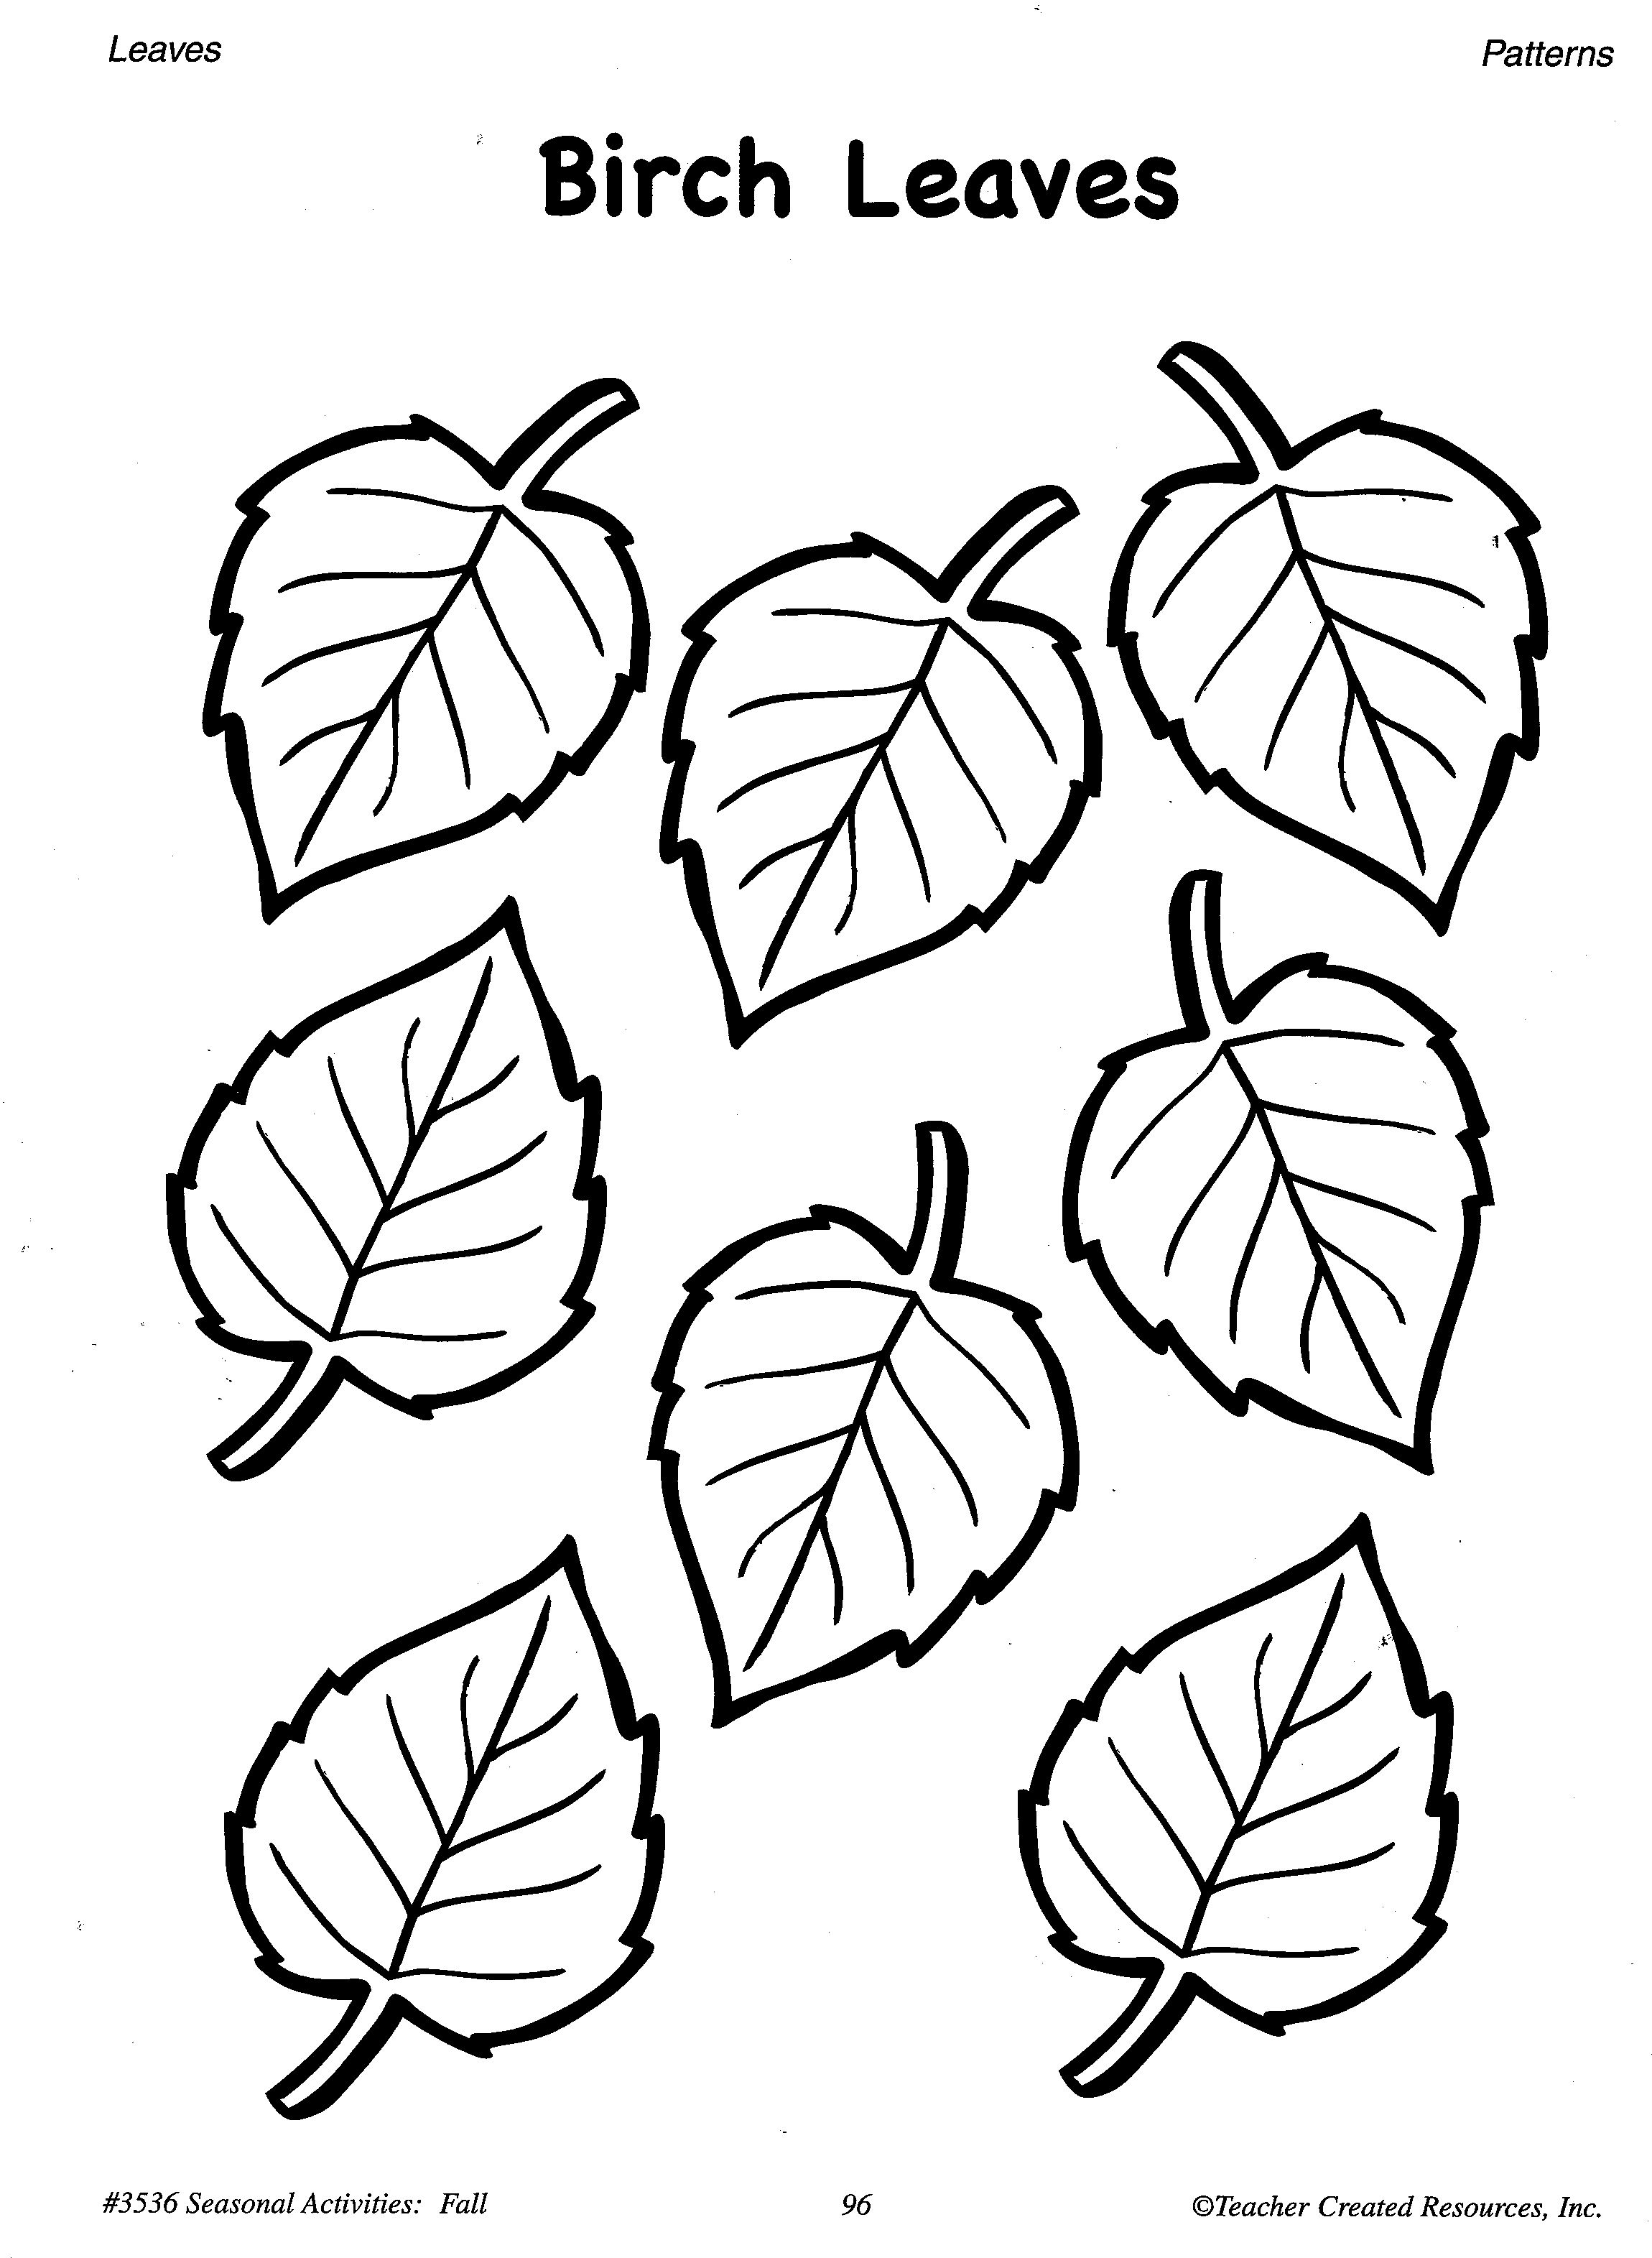 image regarding Printable Leaves known as Simplest Illustrations or photos Of Printable Leaf Behavior - Tree Leaf Reduce Out